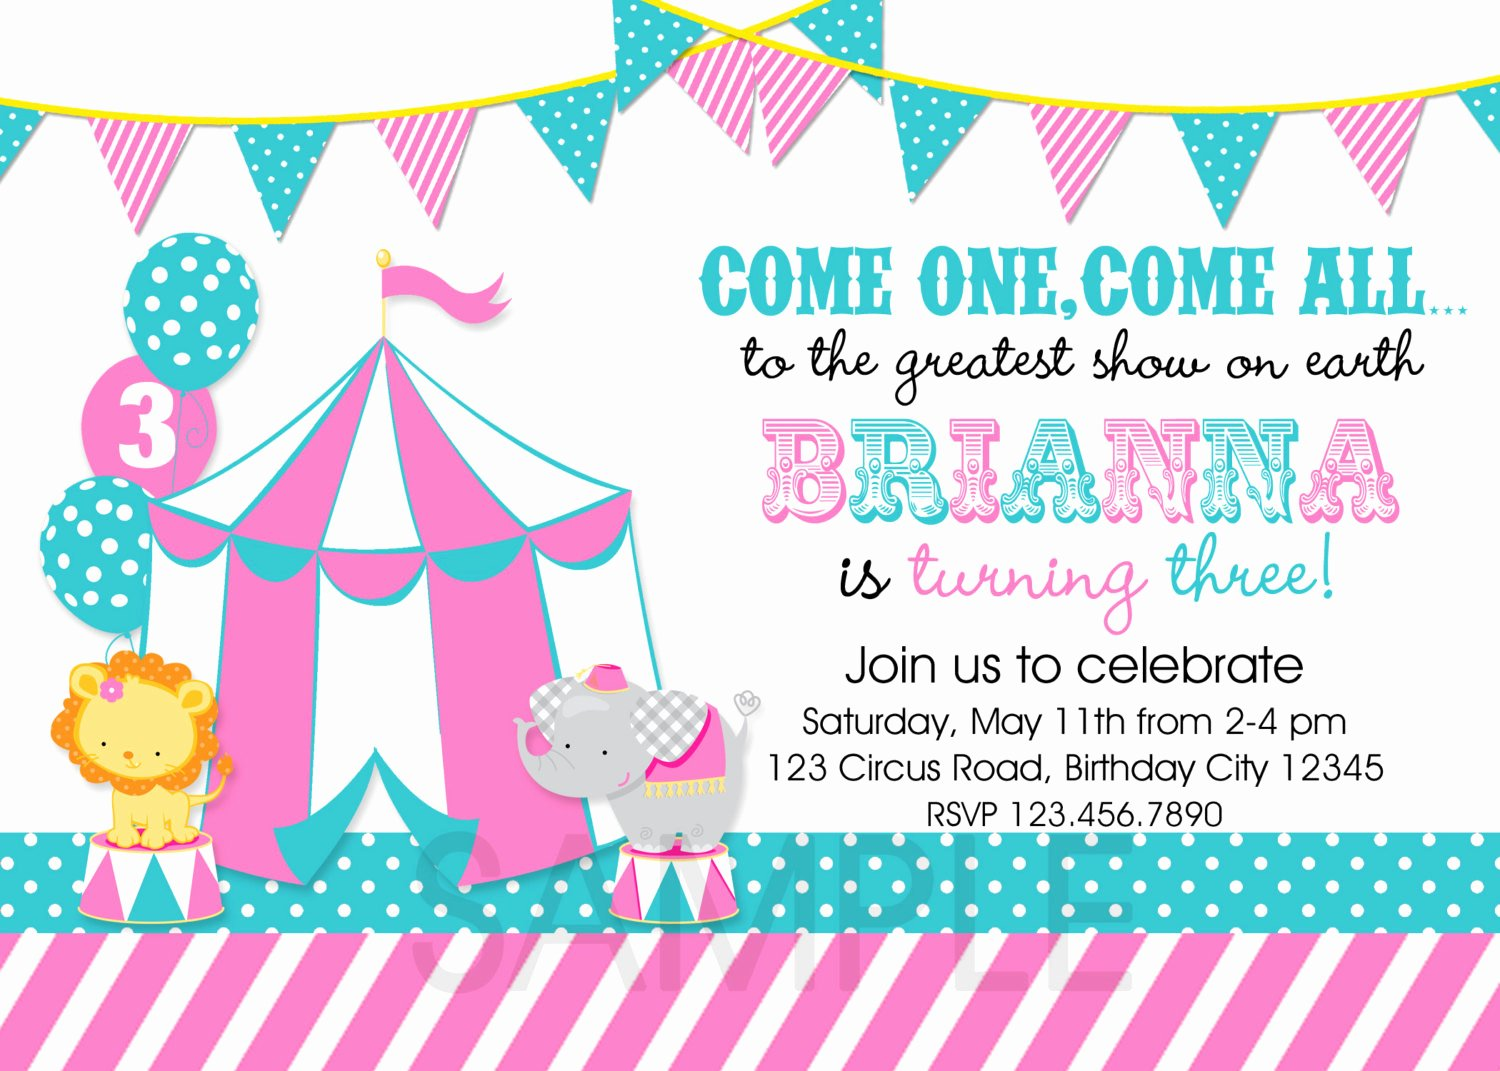 Carnival theme Party Invitations Awesome Circus Birthday Invitation 1st Birthday by thetrendybutterfly